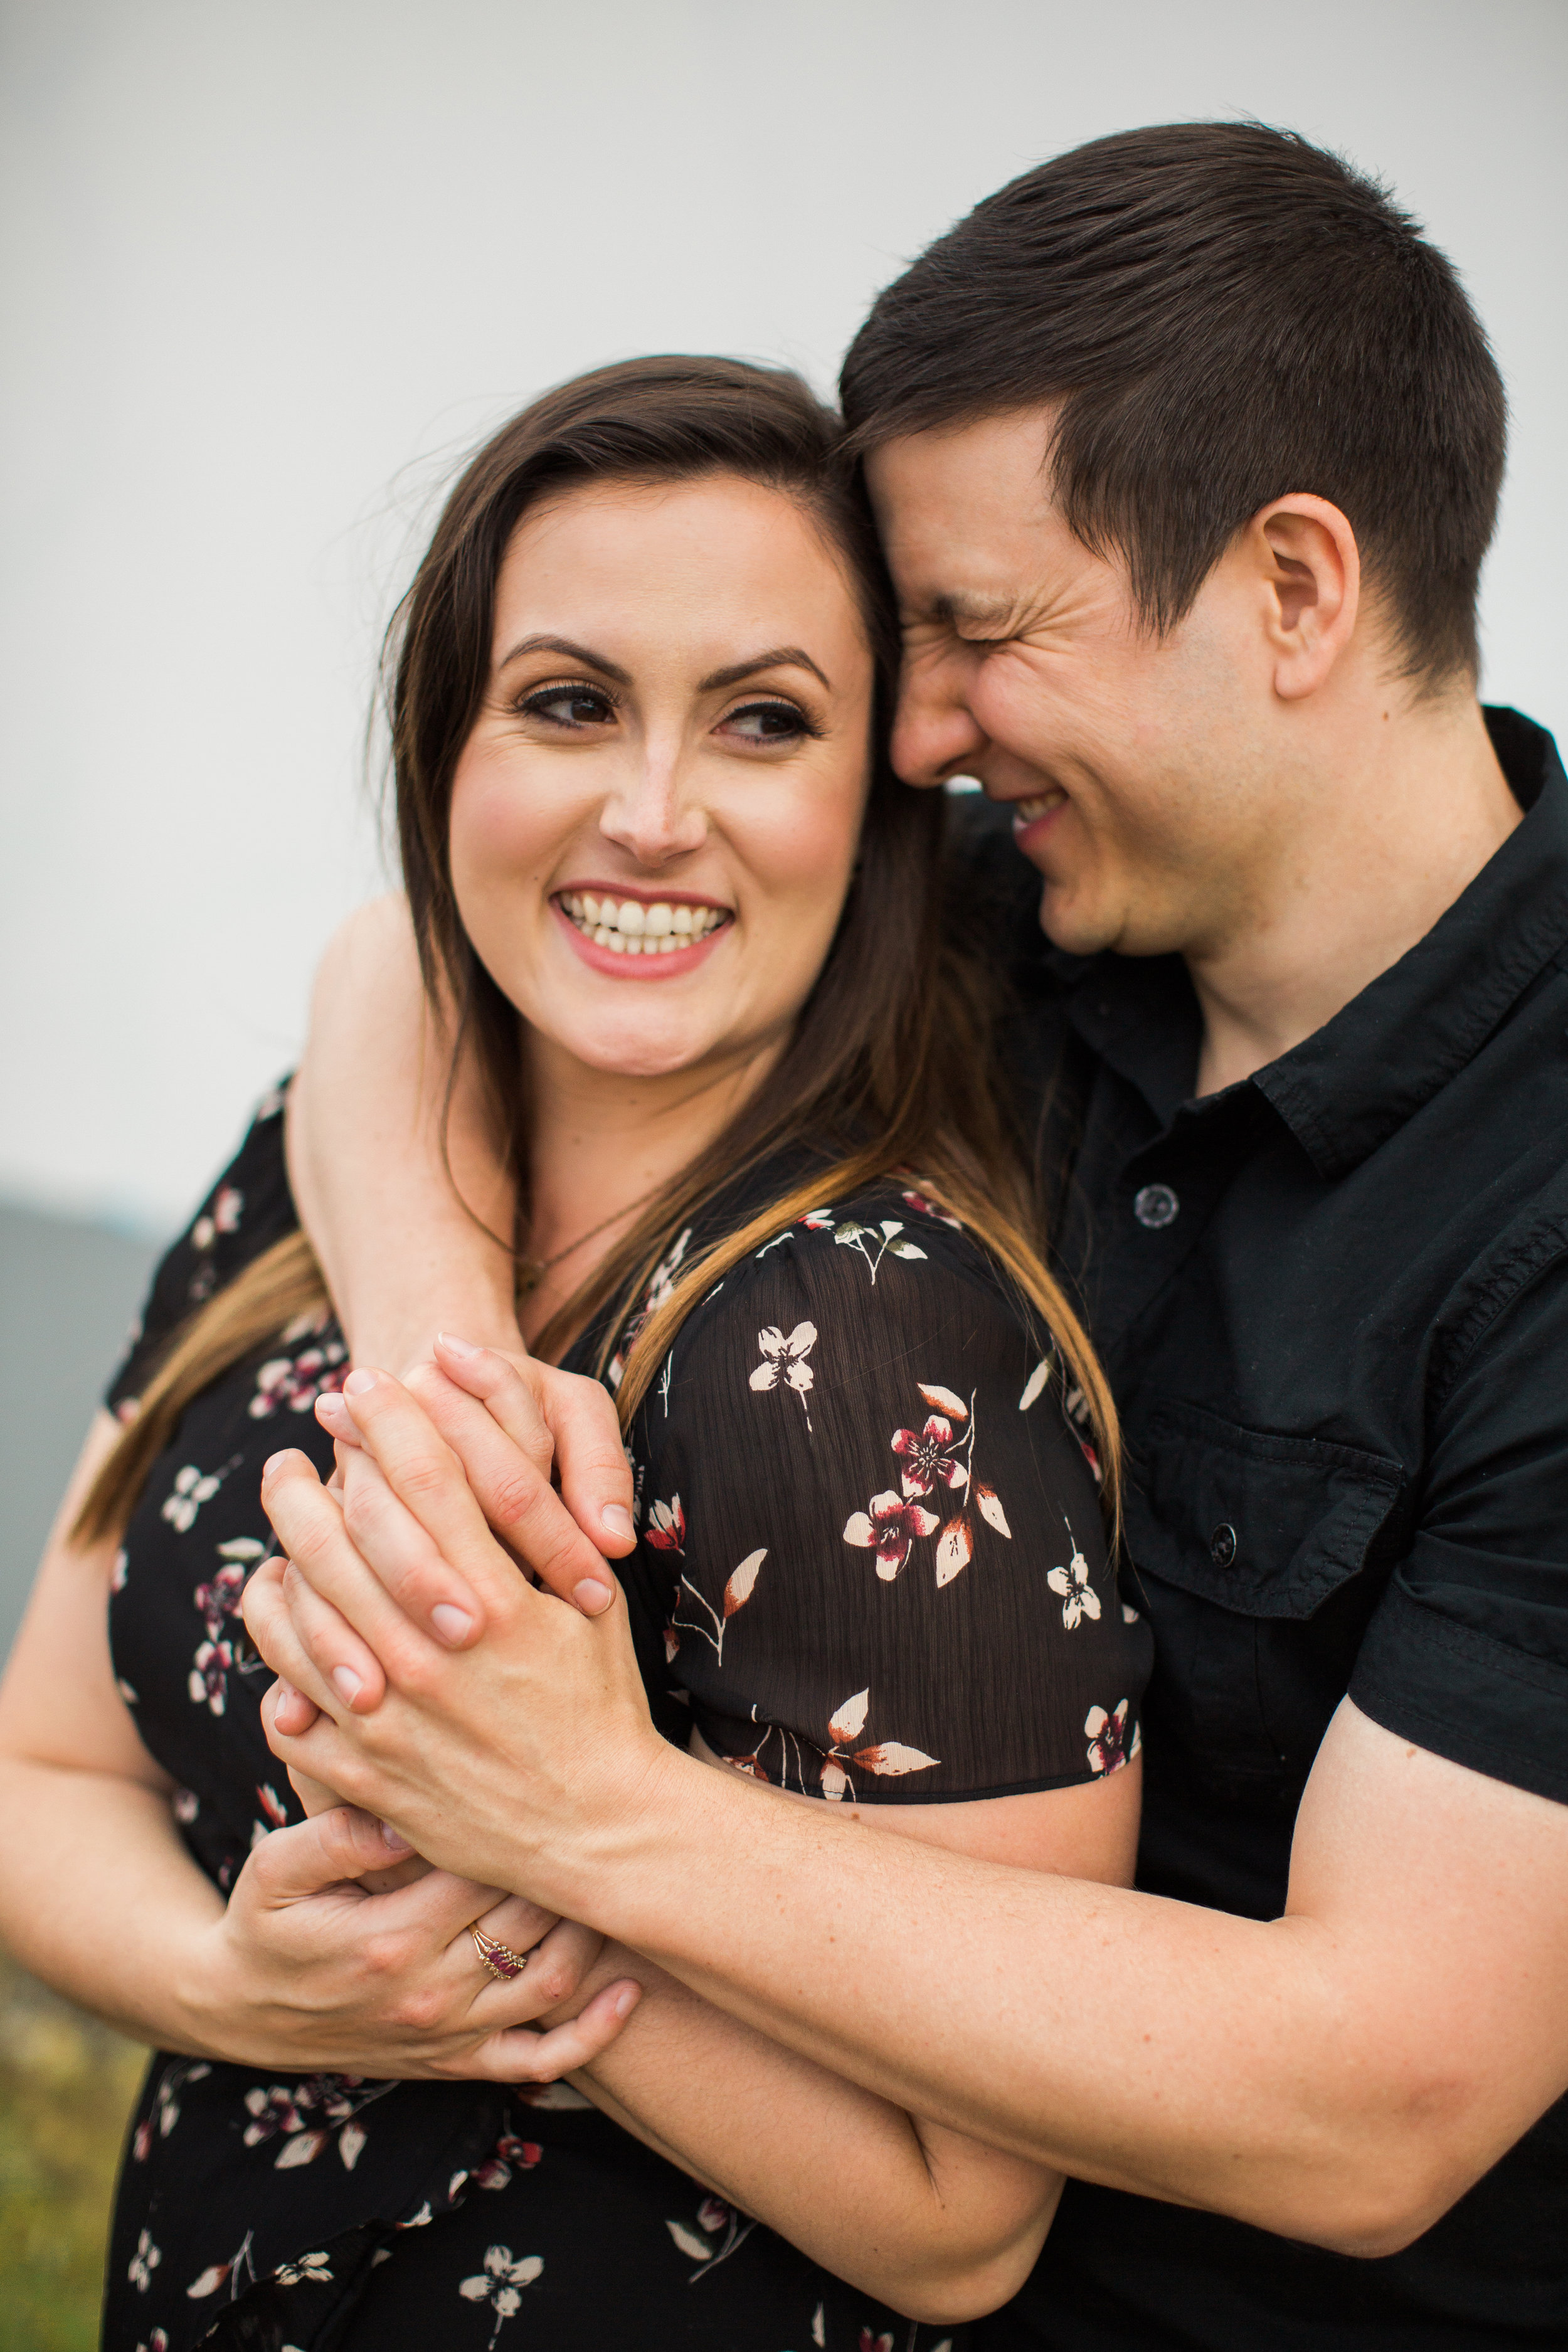 karen ethan-georgetown engagement photos-seattle-janelle elaine photography-65.jpg